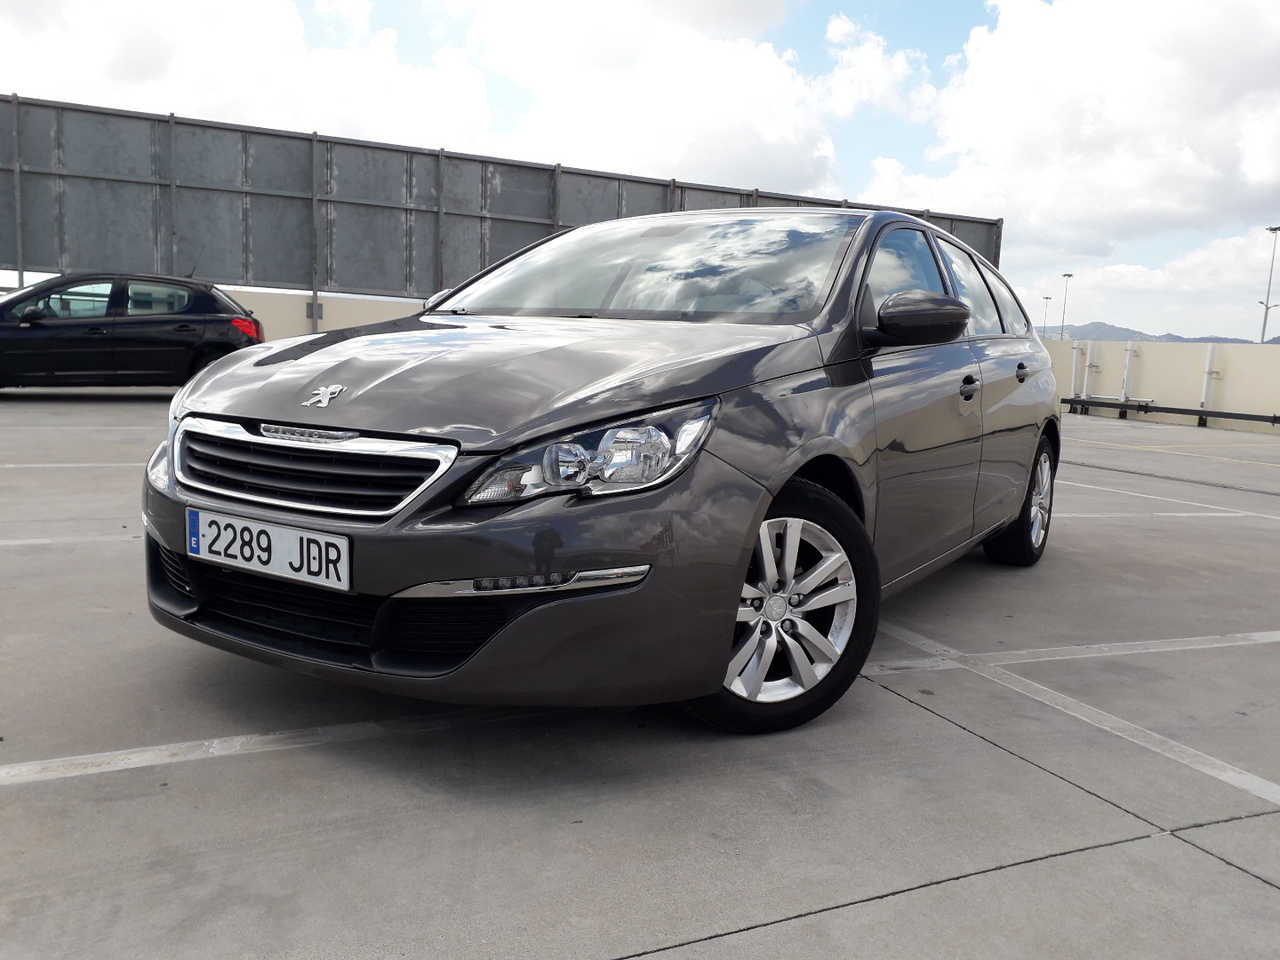 Peugeot 308 SW 1.6HDI BUSINESS   - Foto 1